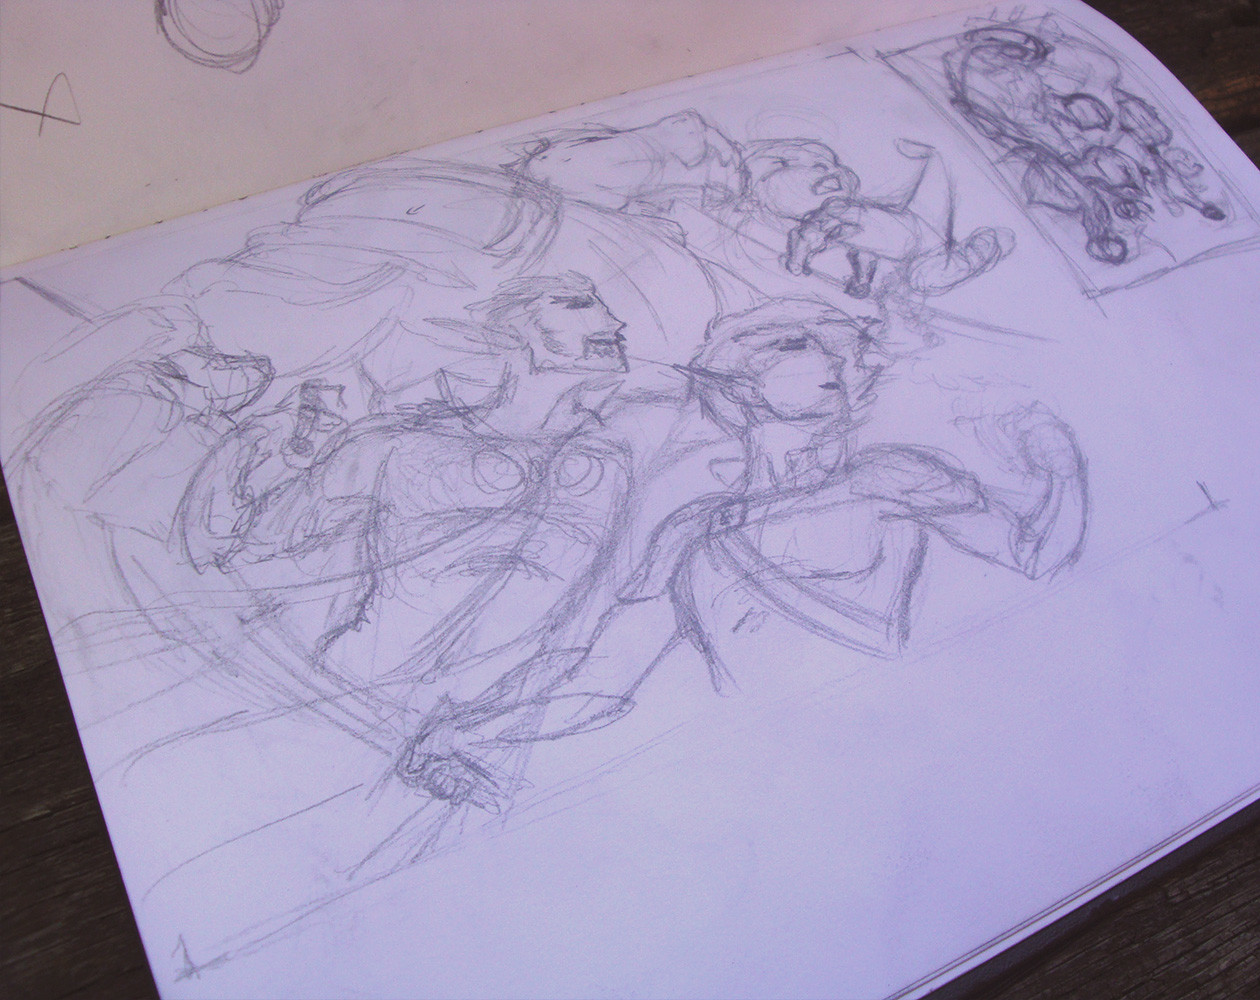 original Thumbnail sketch on the top right with a rough layout of positioning